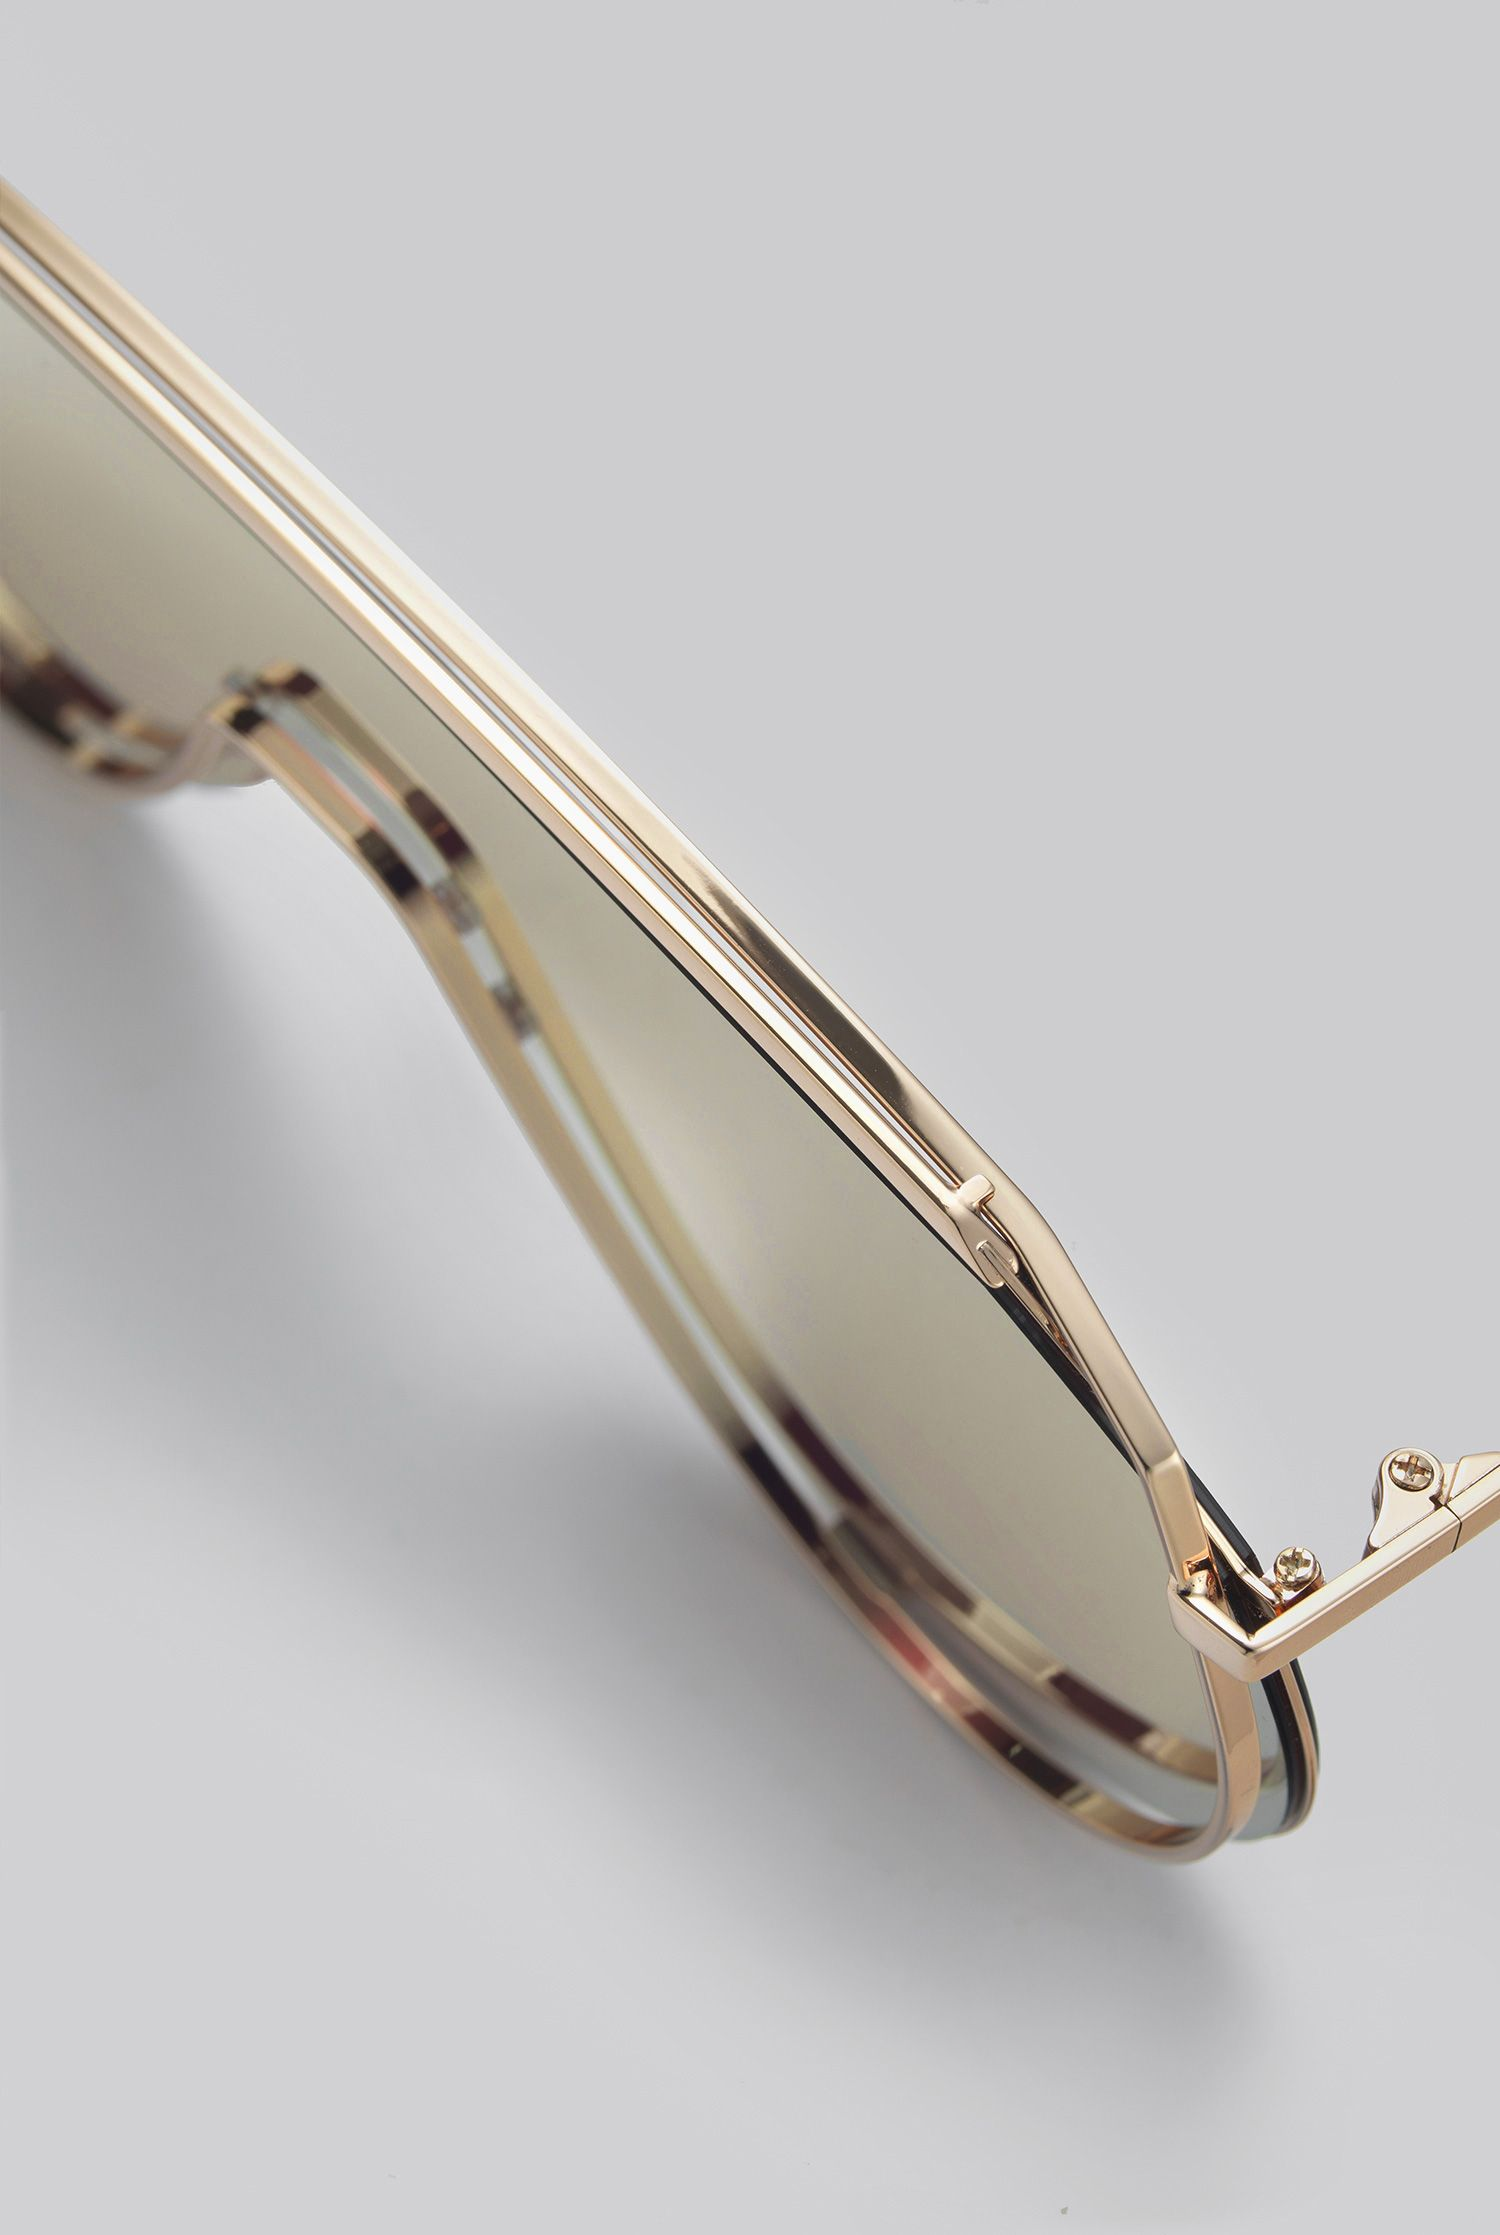 42b7bf5e9216 GENTLE MONSTER 2018 Sunglasses AFIX 032(14M) Stainless steel frame in gold